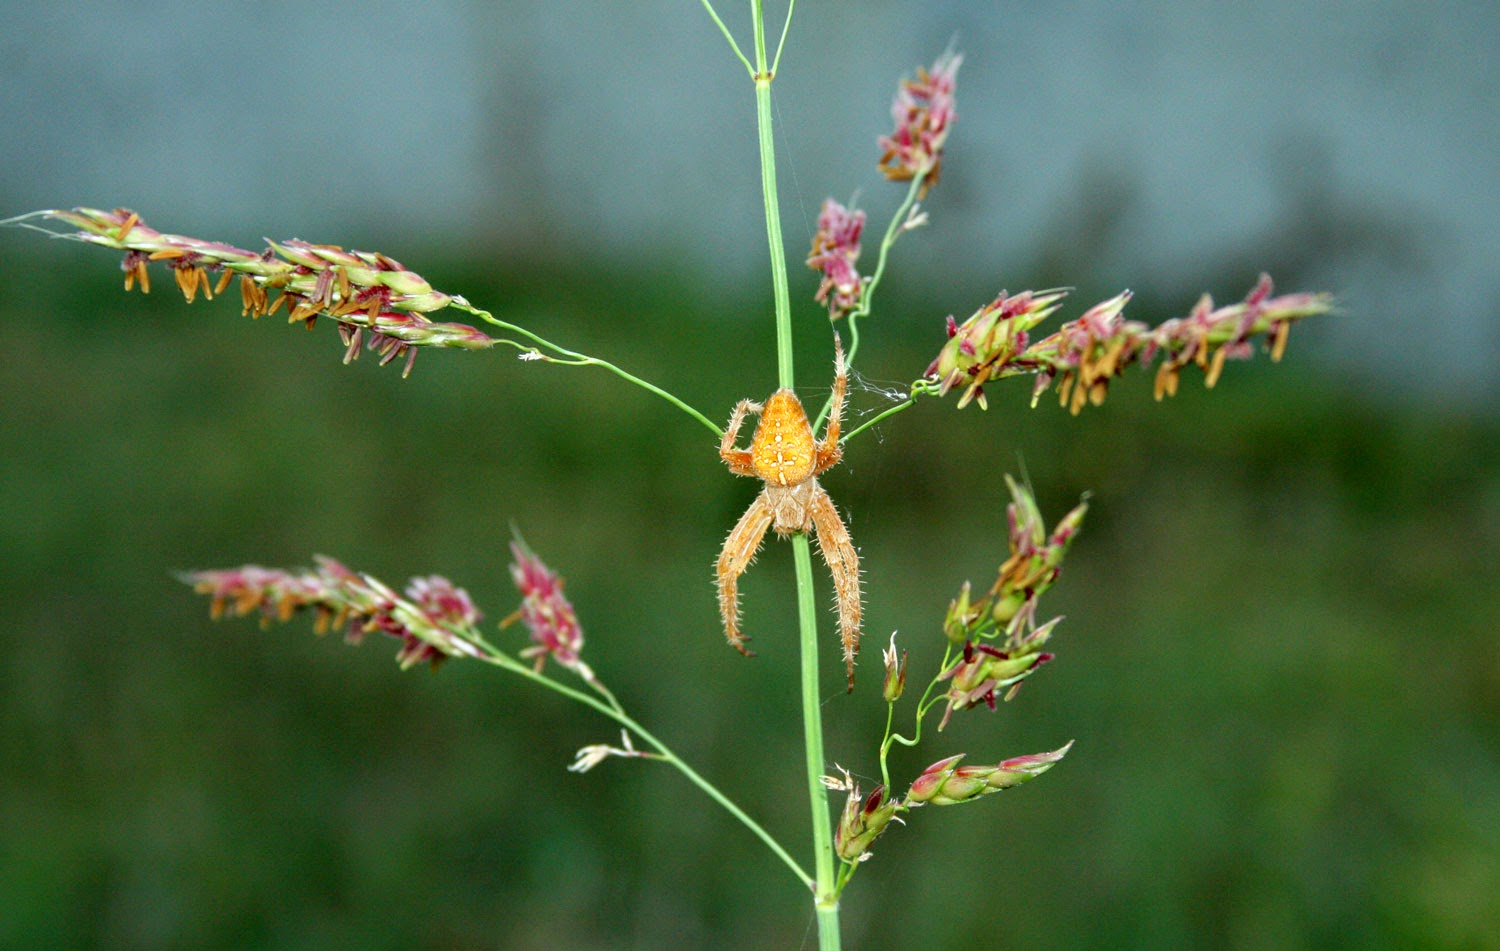 Awesome spider on colourful grass